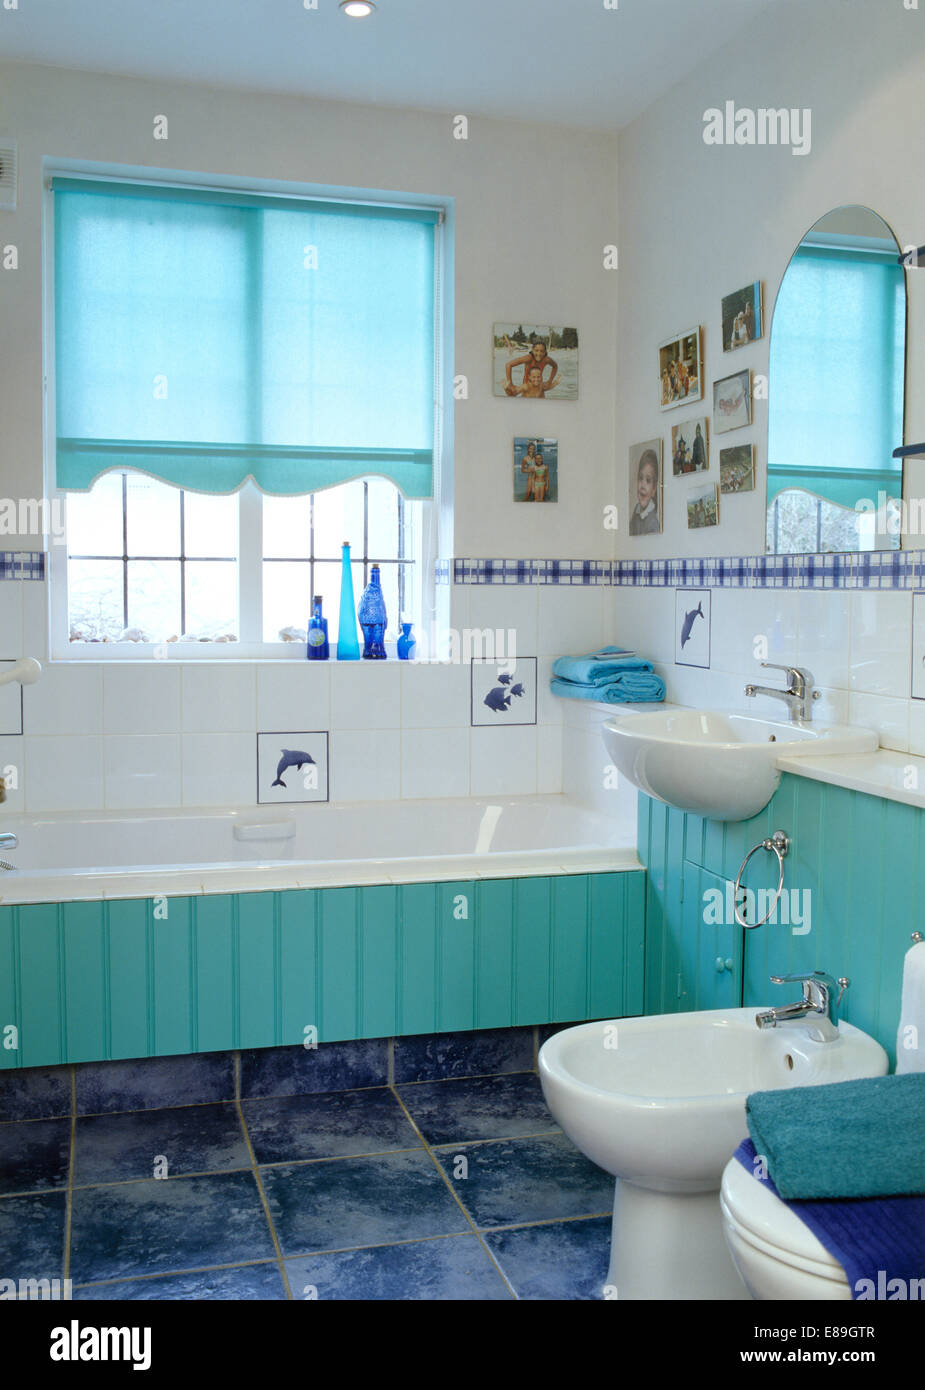 Tongue and groove for bathrooms - Stock Photo Turquoise Blind On Window Above Turquoise Tongue Groove Panelled Bath In Small White Bathroom With White Bidet